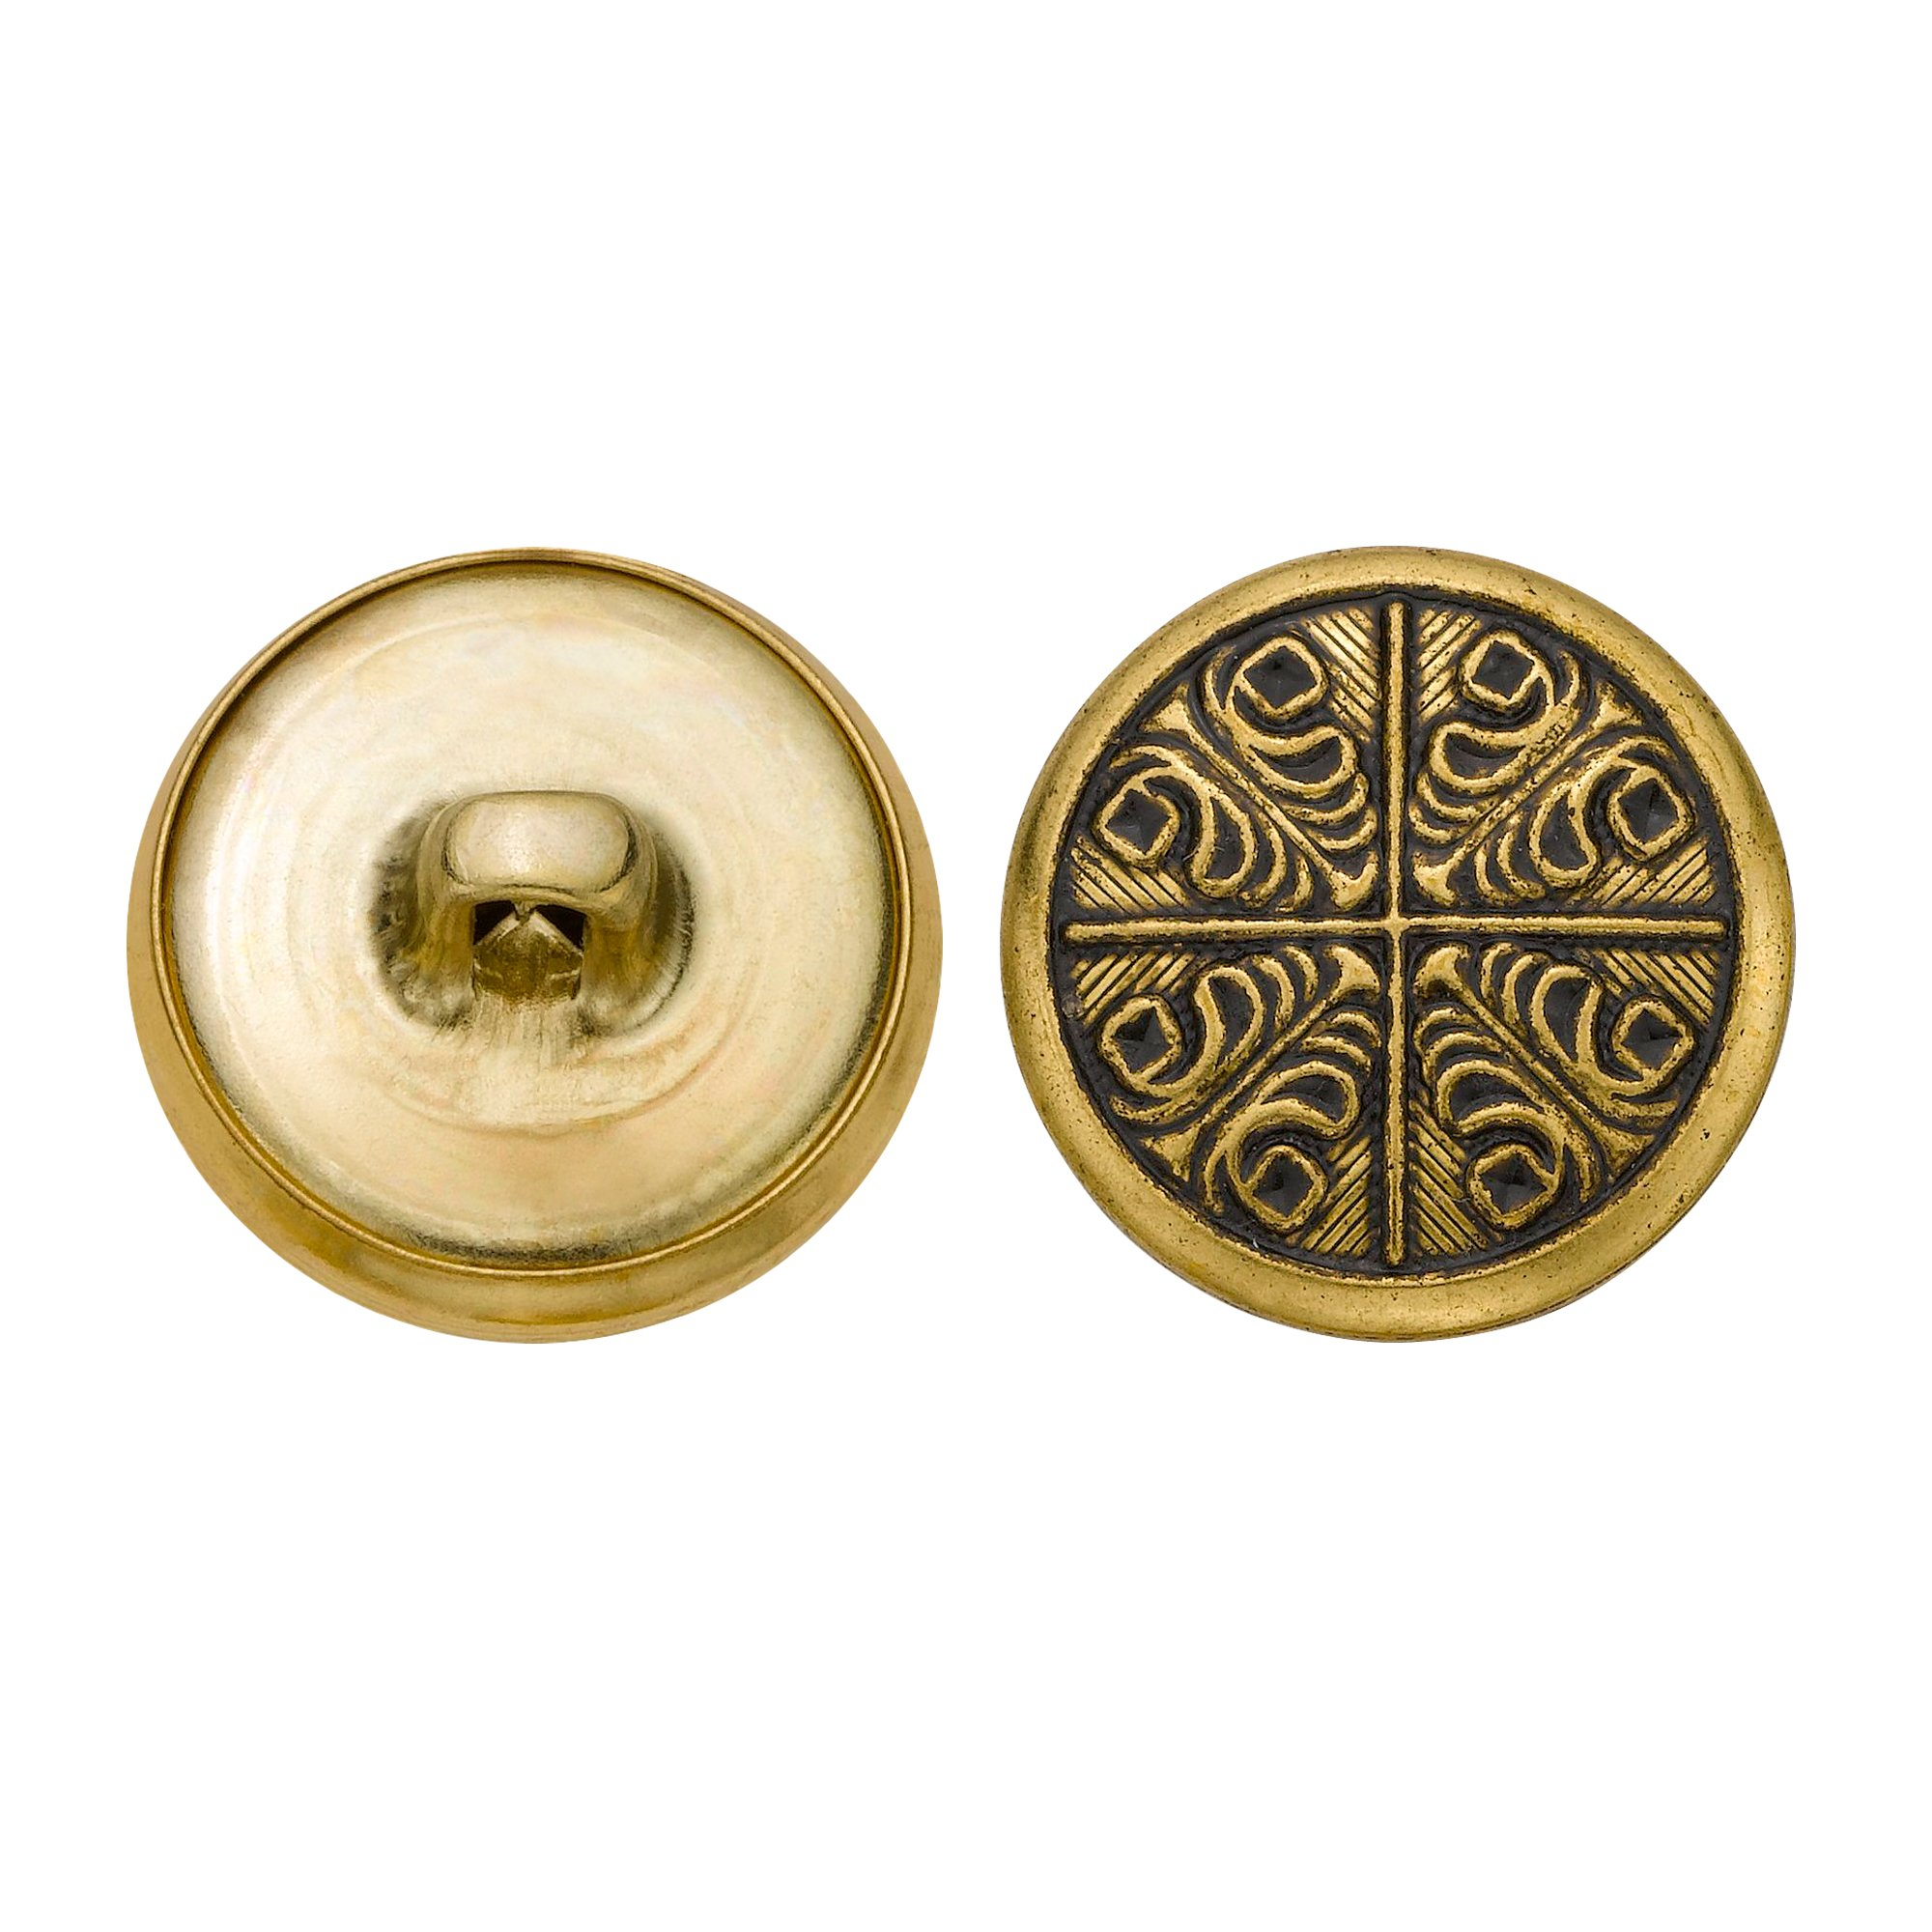 C&C Metal Products 5340 Modern Metal Button, Size 30 Ligne, Antique Gold, 36-Pack